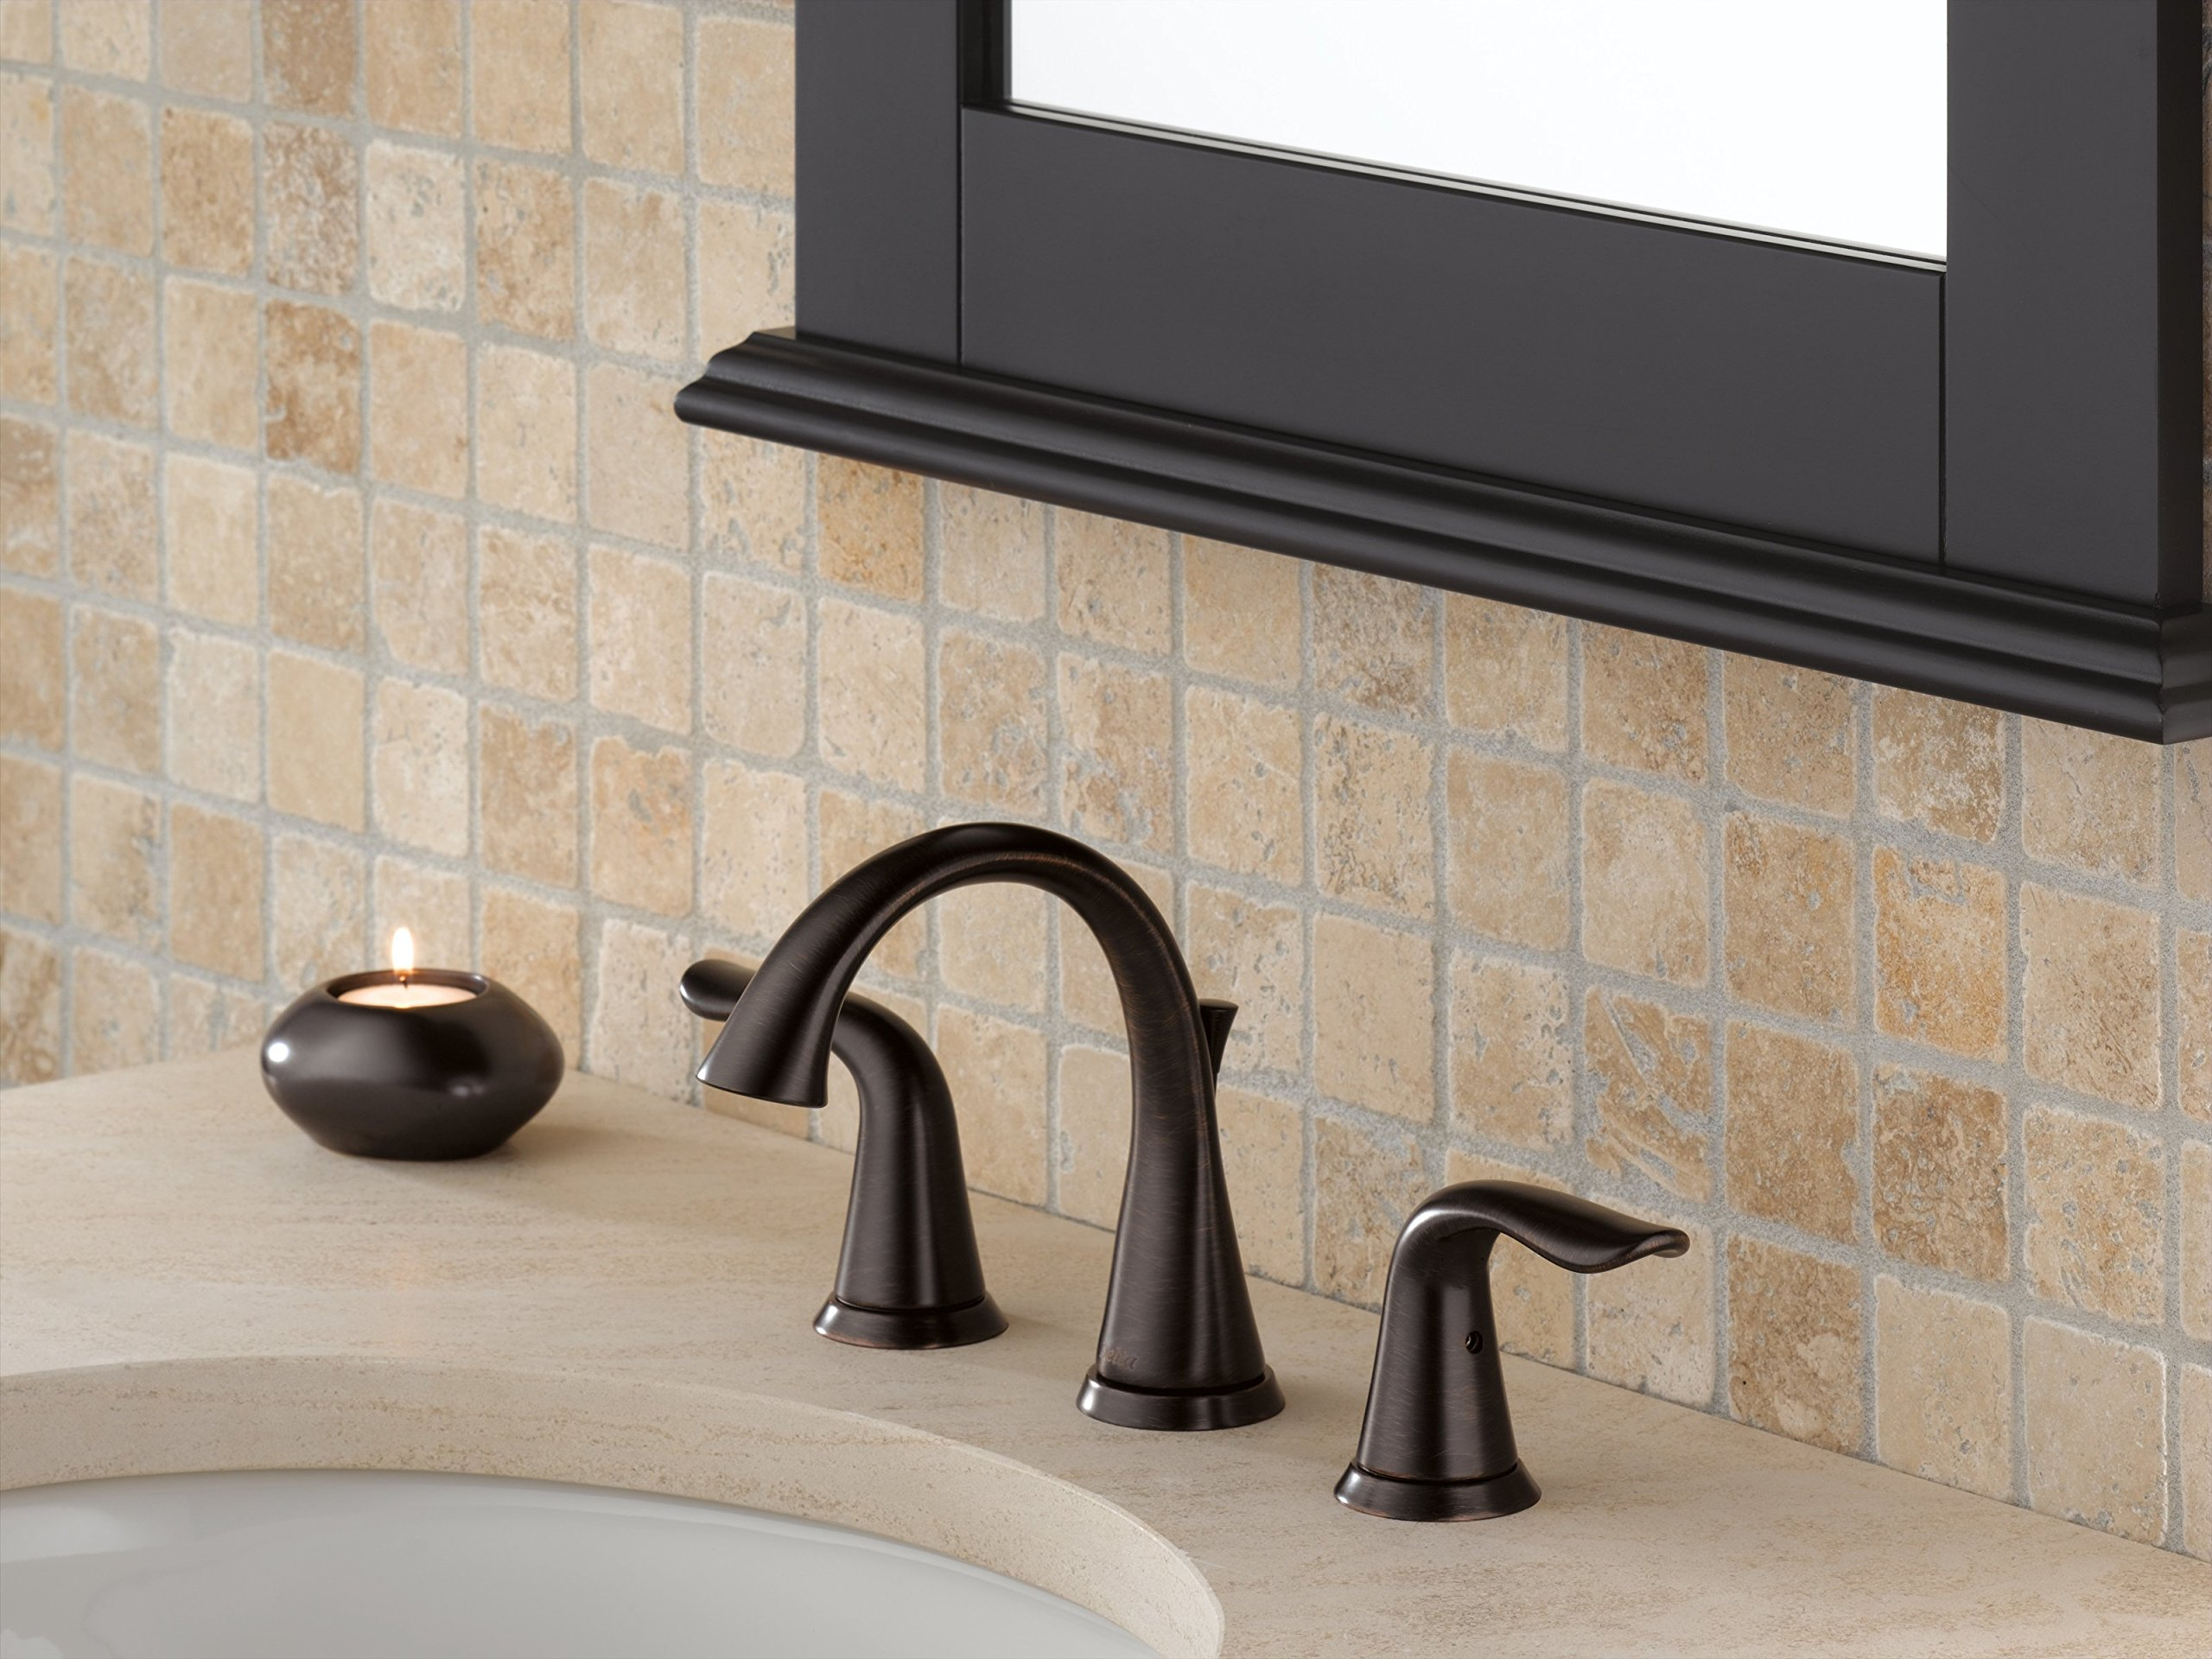 Delta 3538-RBMPU-DST Lahara 2-Handle Widespread Bathroom Faucet with Diamond Seal Technology and Metal Drain Assembly, Venetian Bronze by DELTA FAUCET (Image #2)